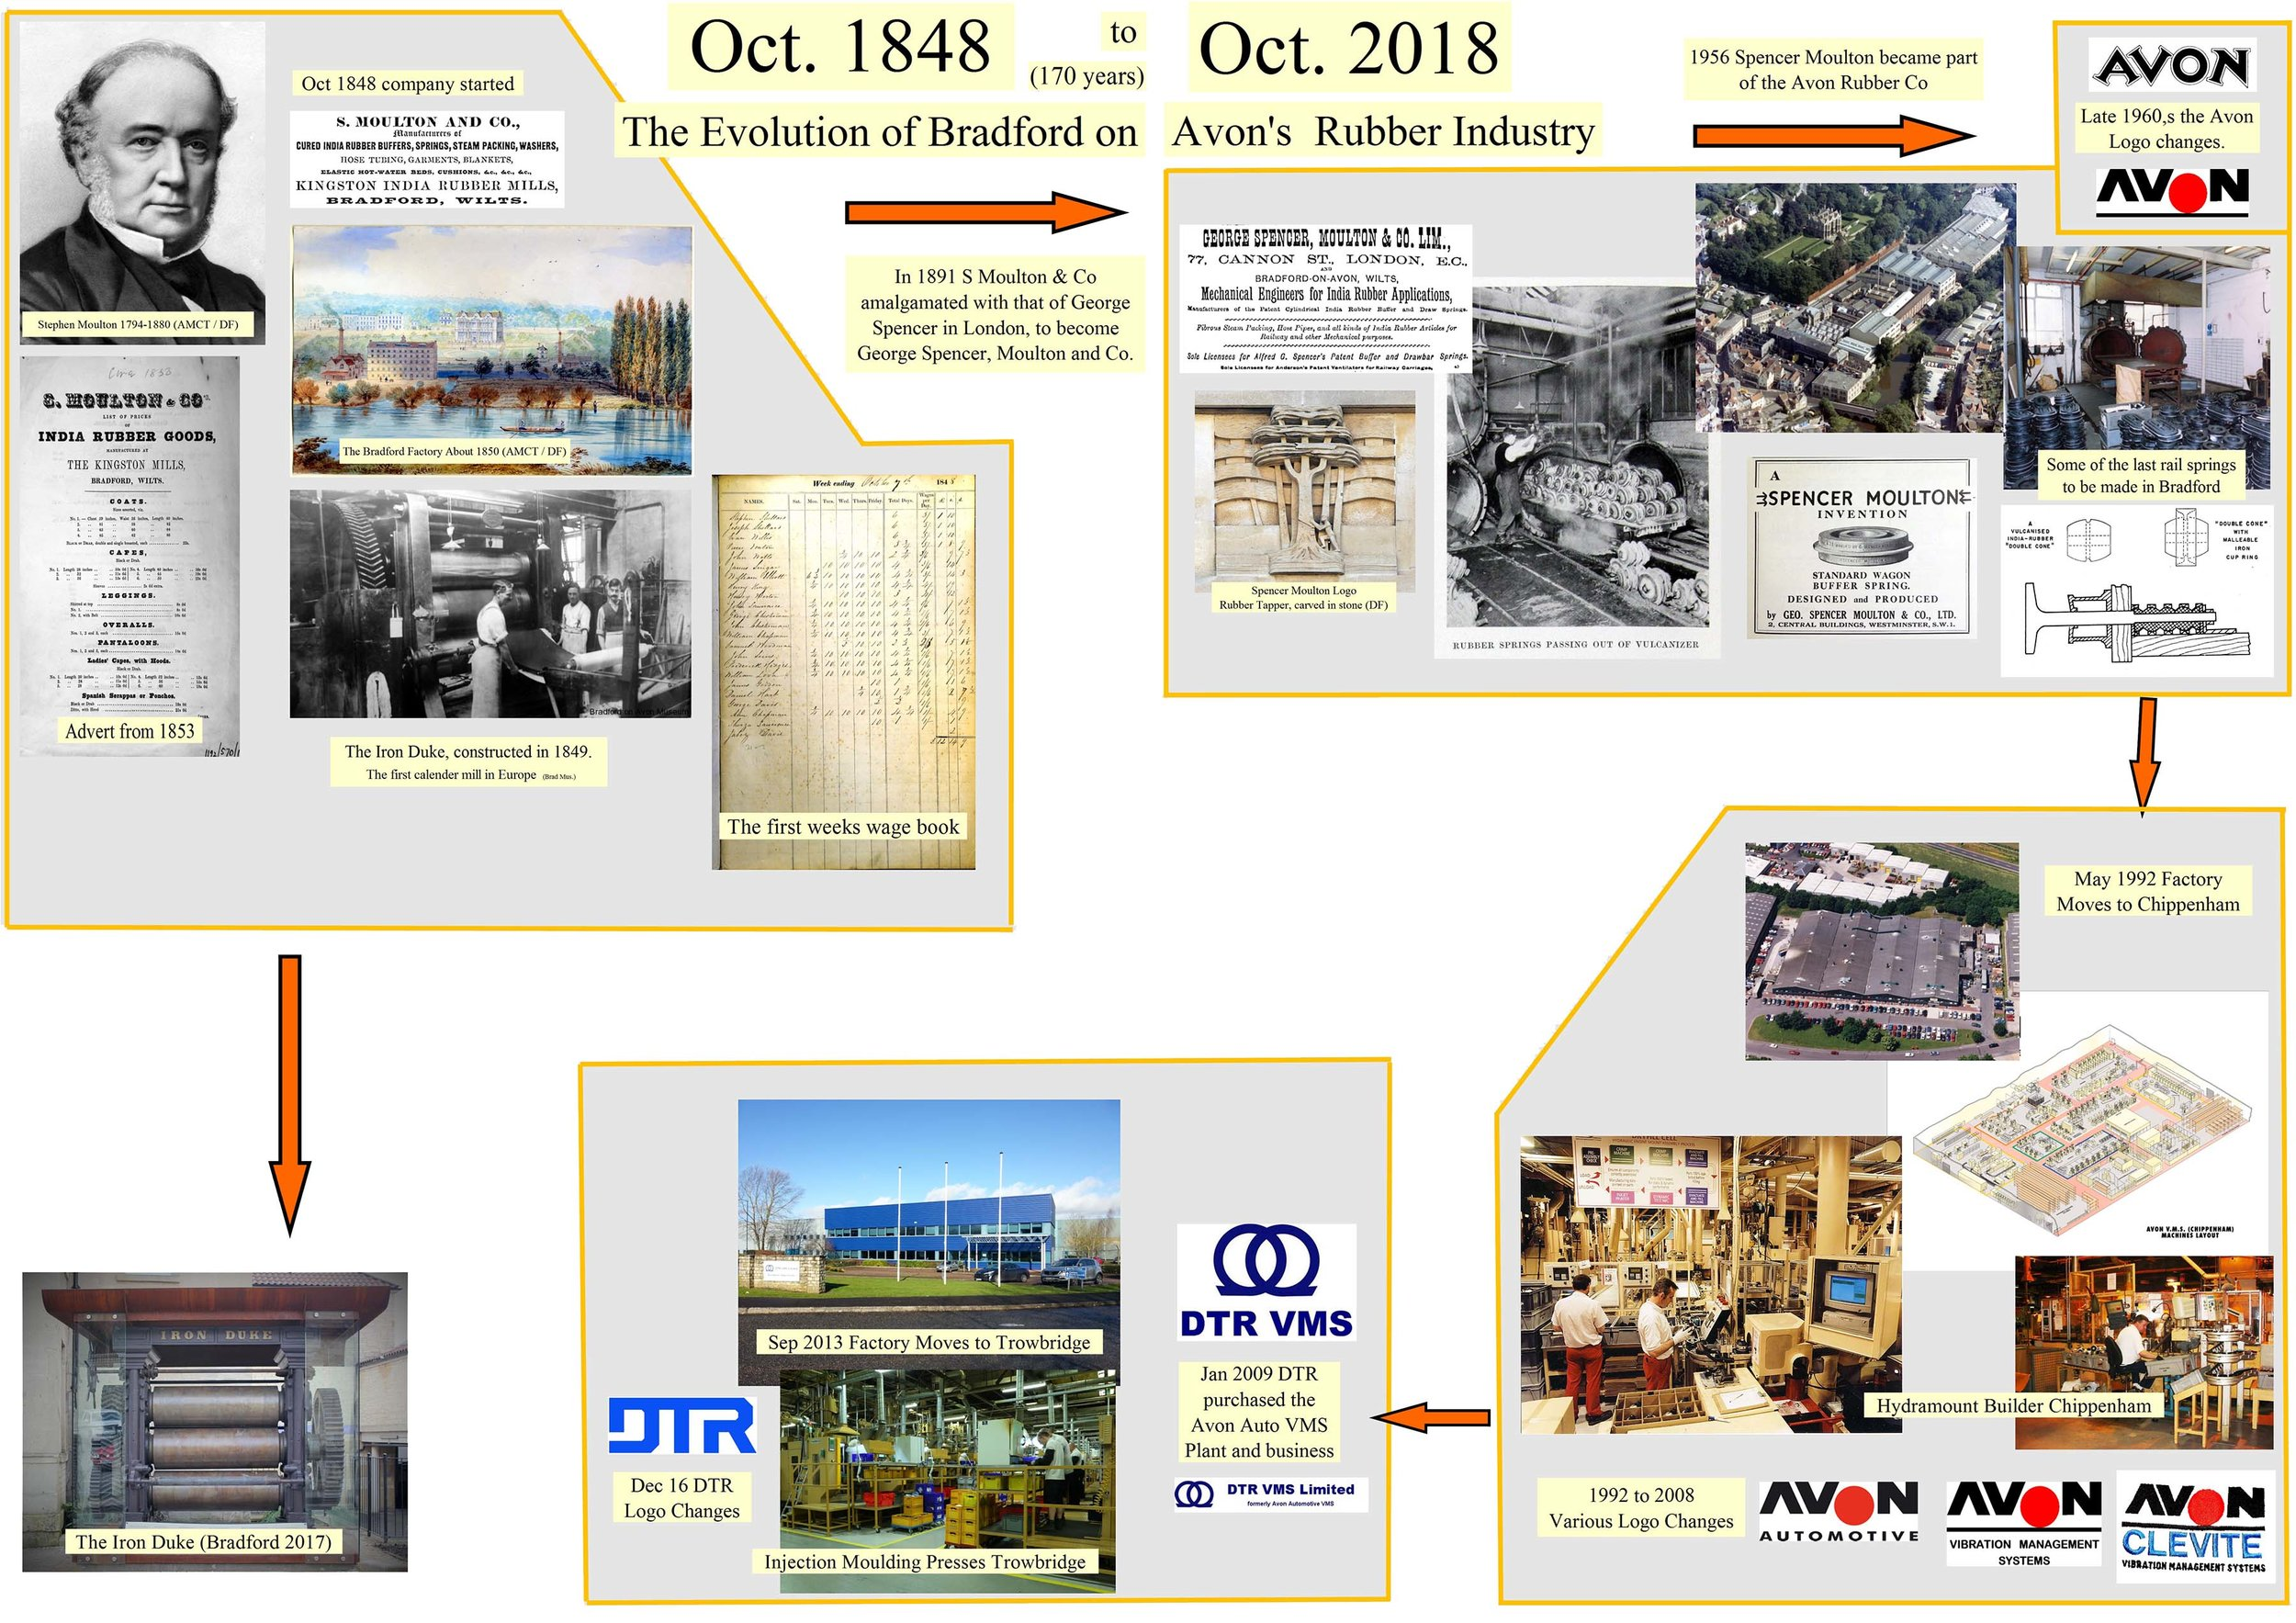 A pictorial illustration of how Bradford's rubber industry has progressed to the present day. - click to enlarge. Many thanks to Andrew Shipley at DTR VMS for this image.